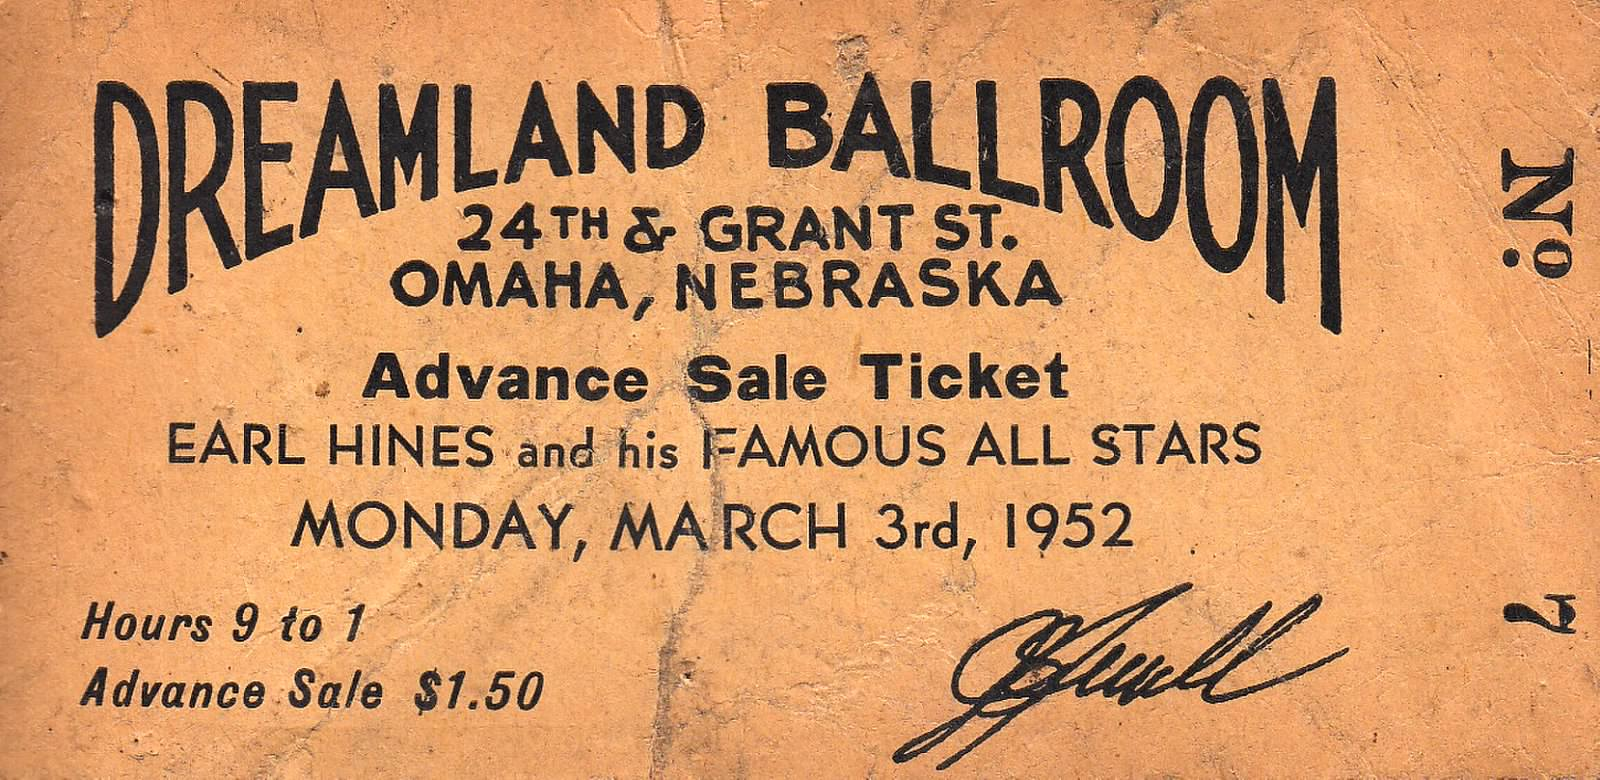 A ticket to The Dreamland Ballroom.